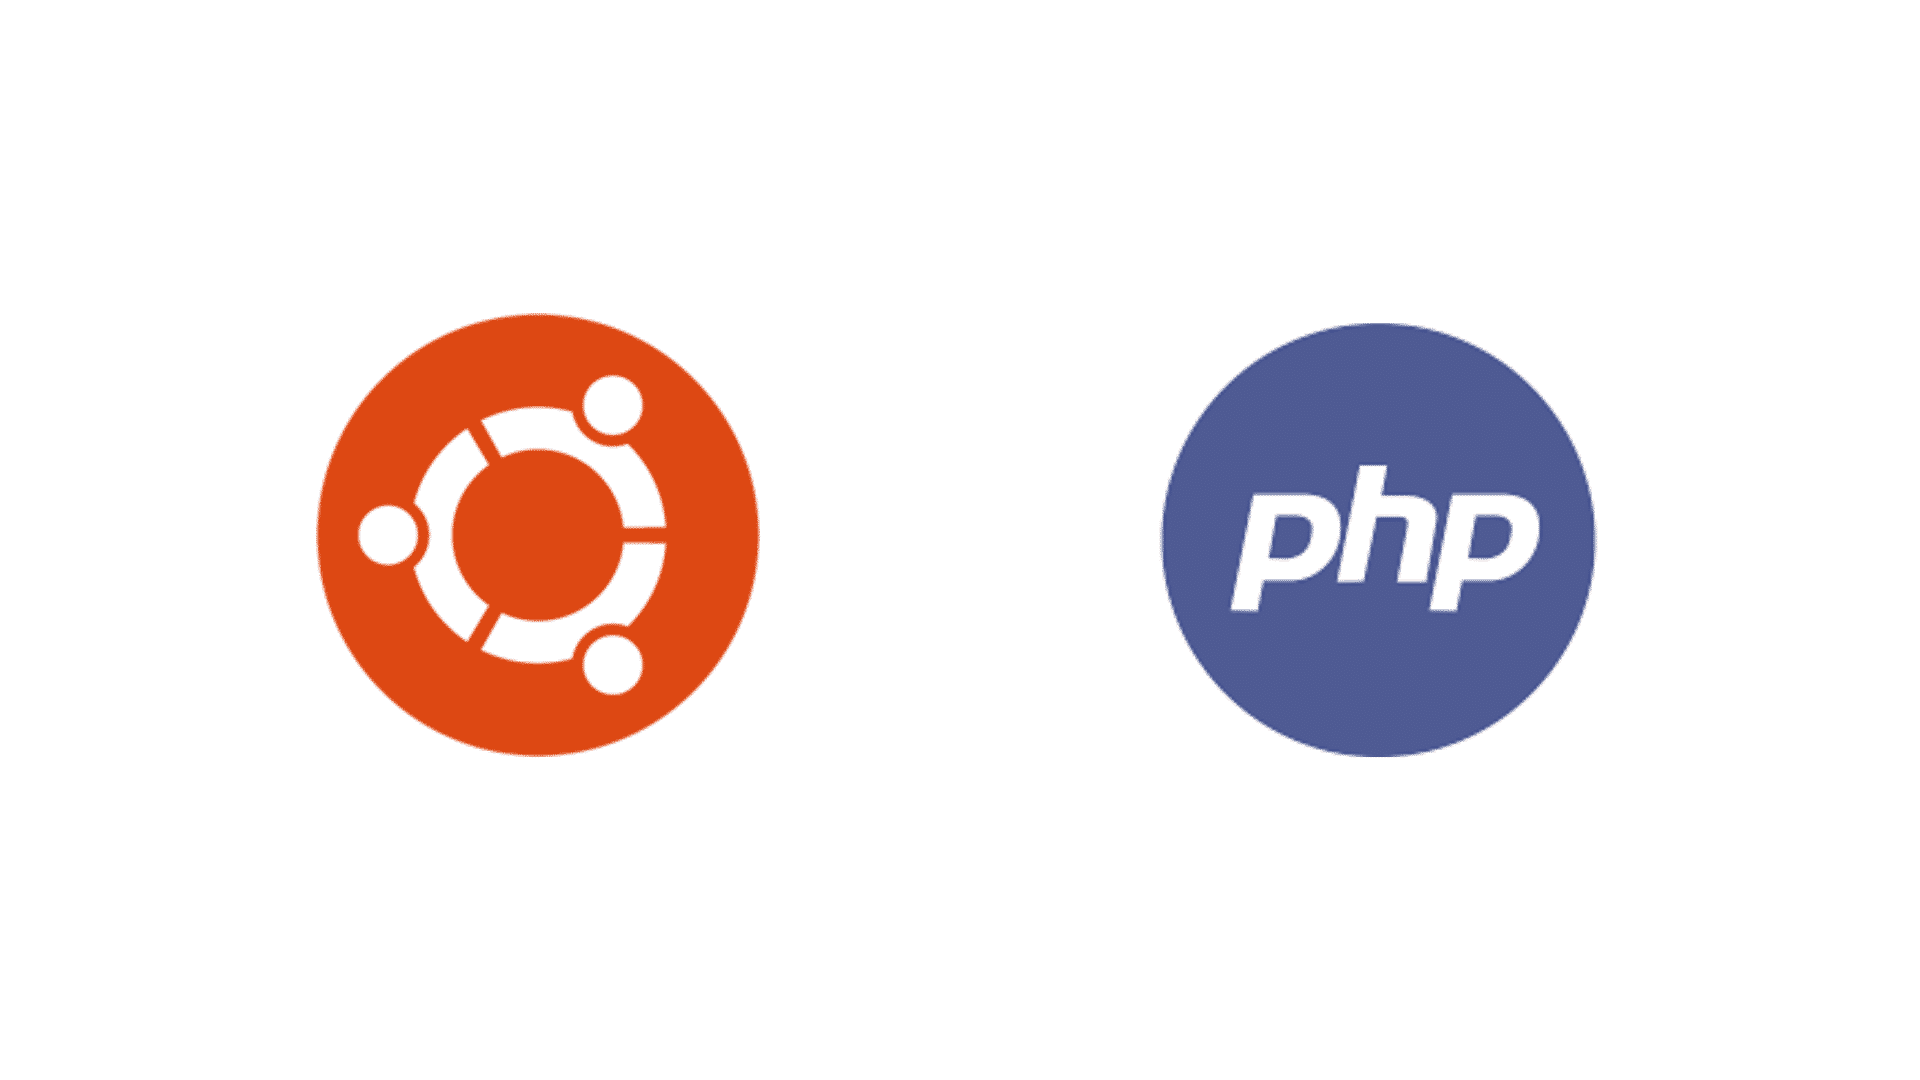 How to install PHP on Ubuntu 18.04 or Linux